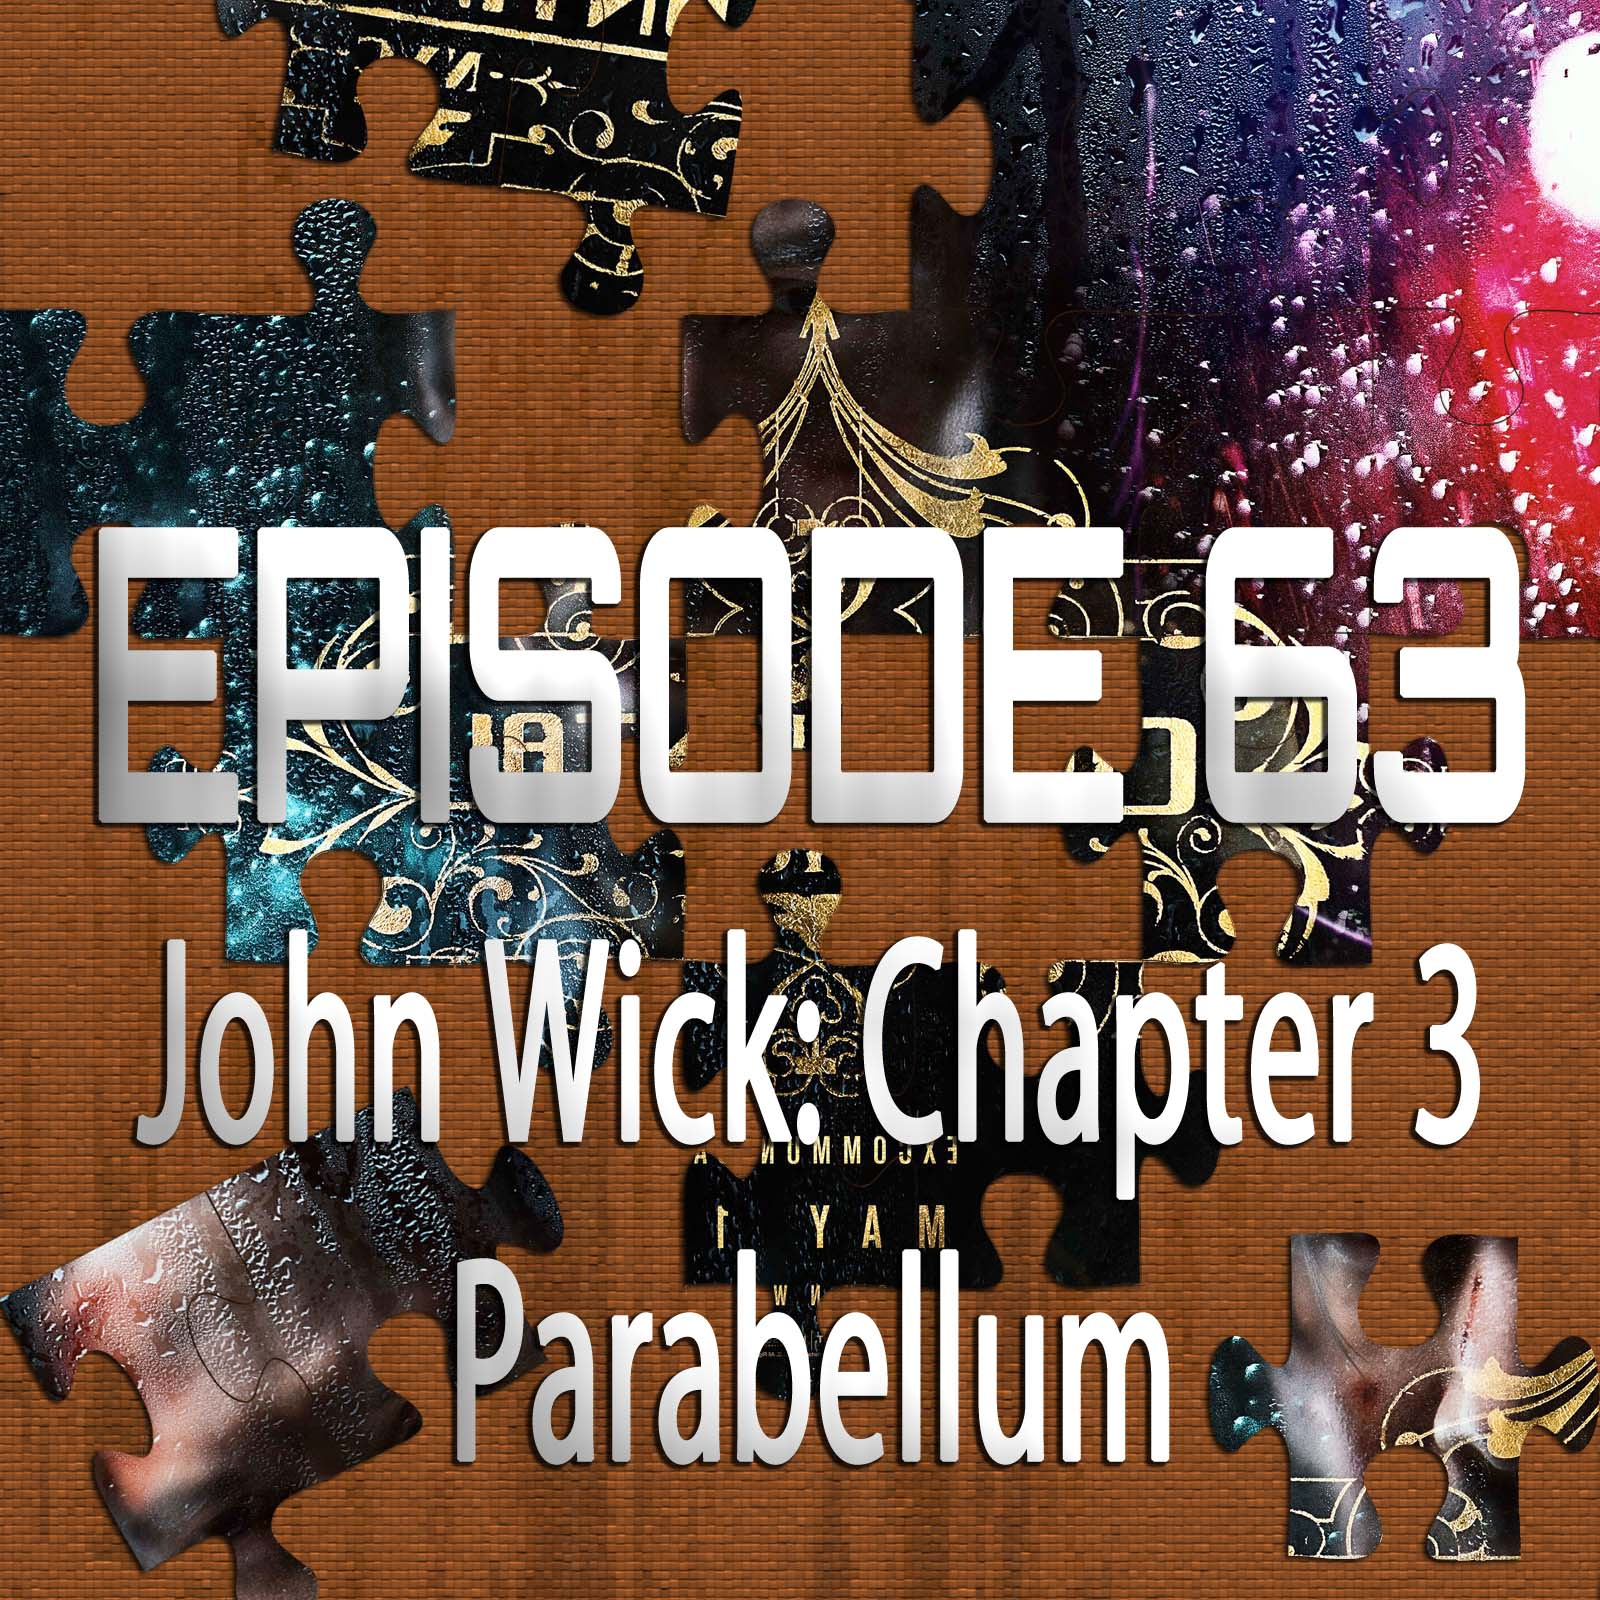 John Wick: Chapter 3 – Parabellum (Featuring Sean Malloy)